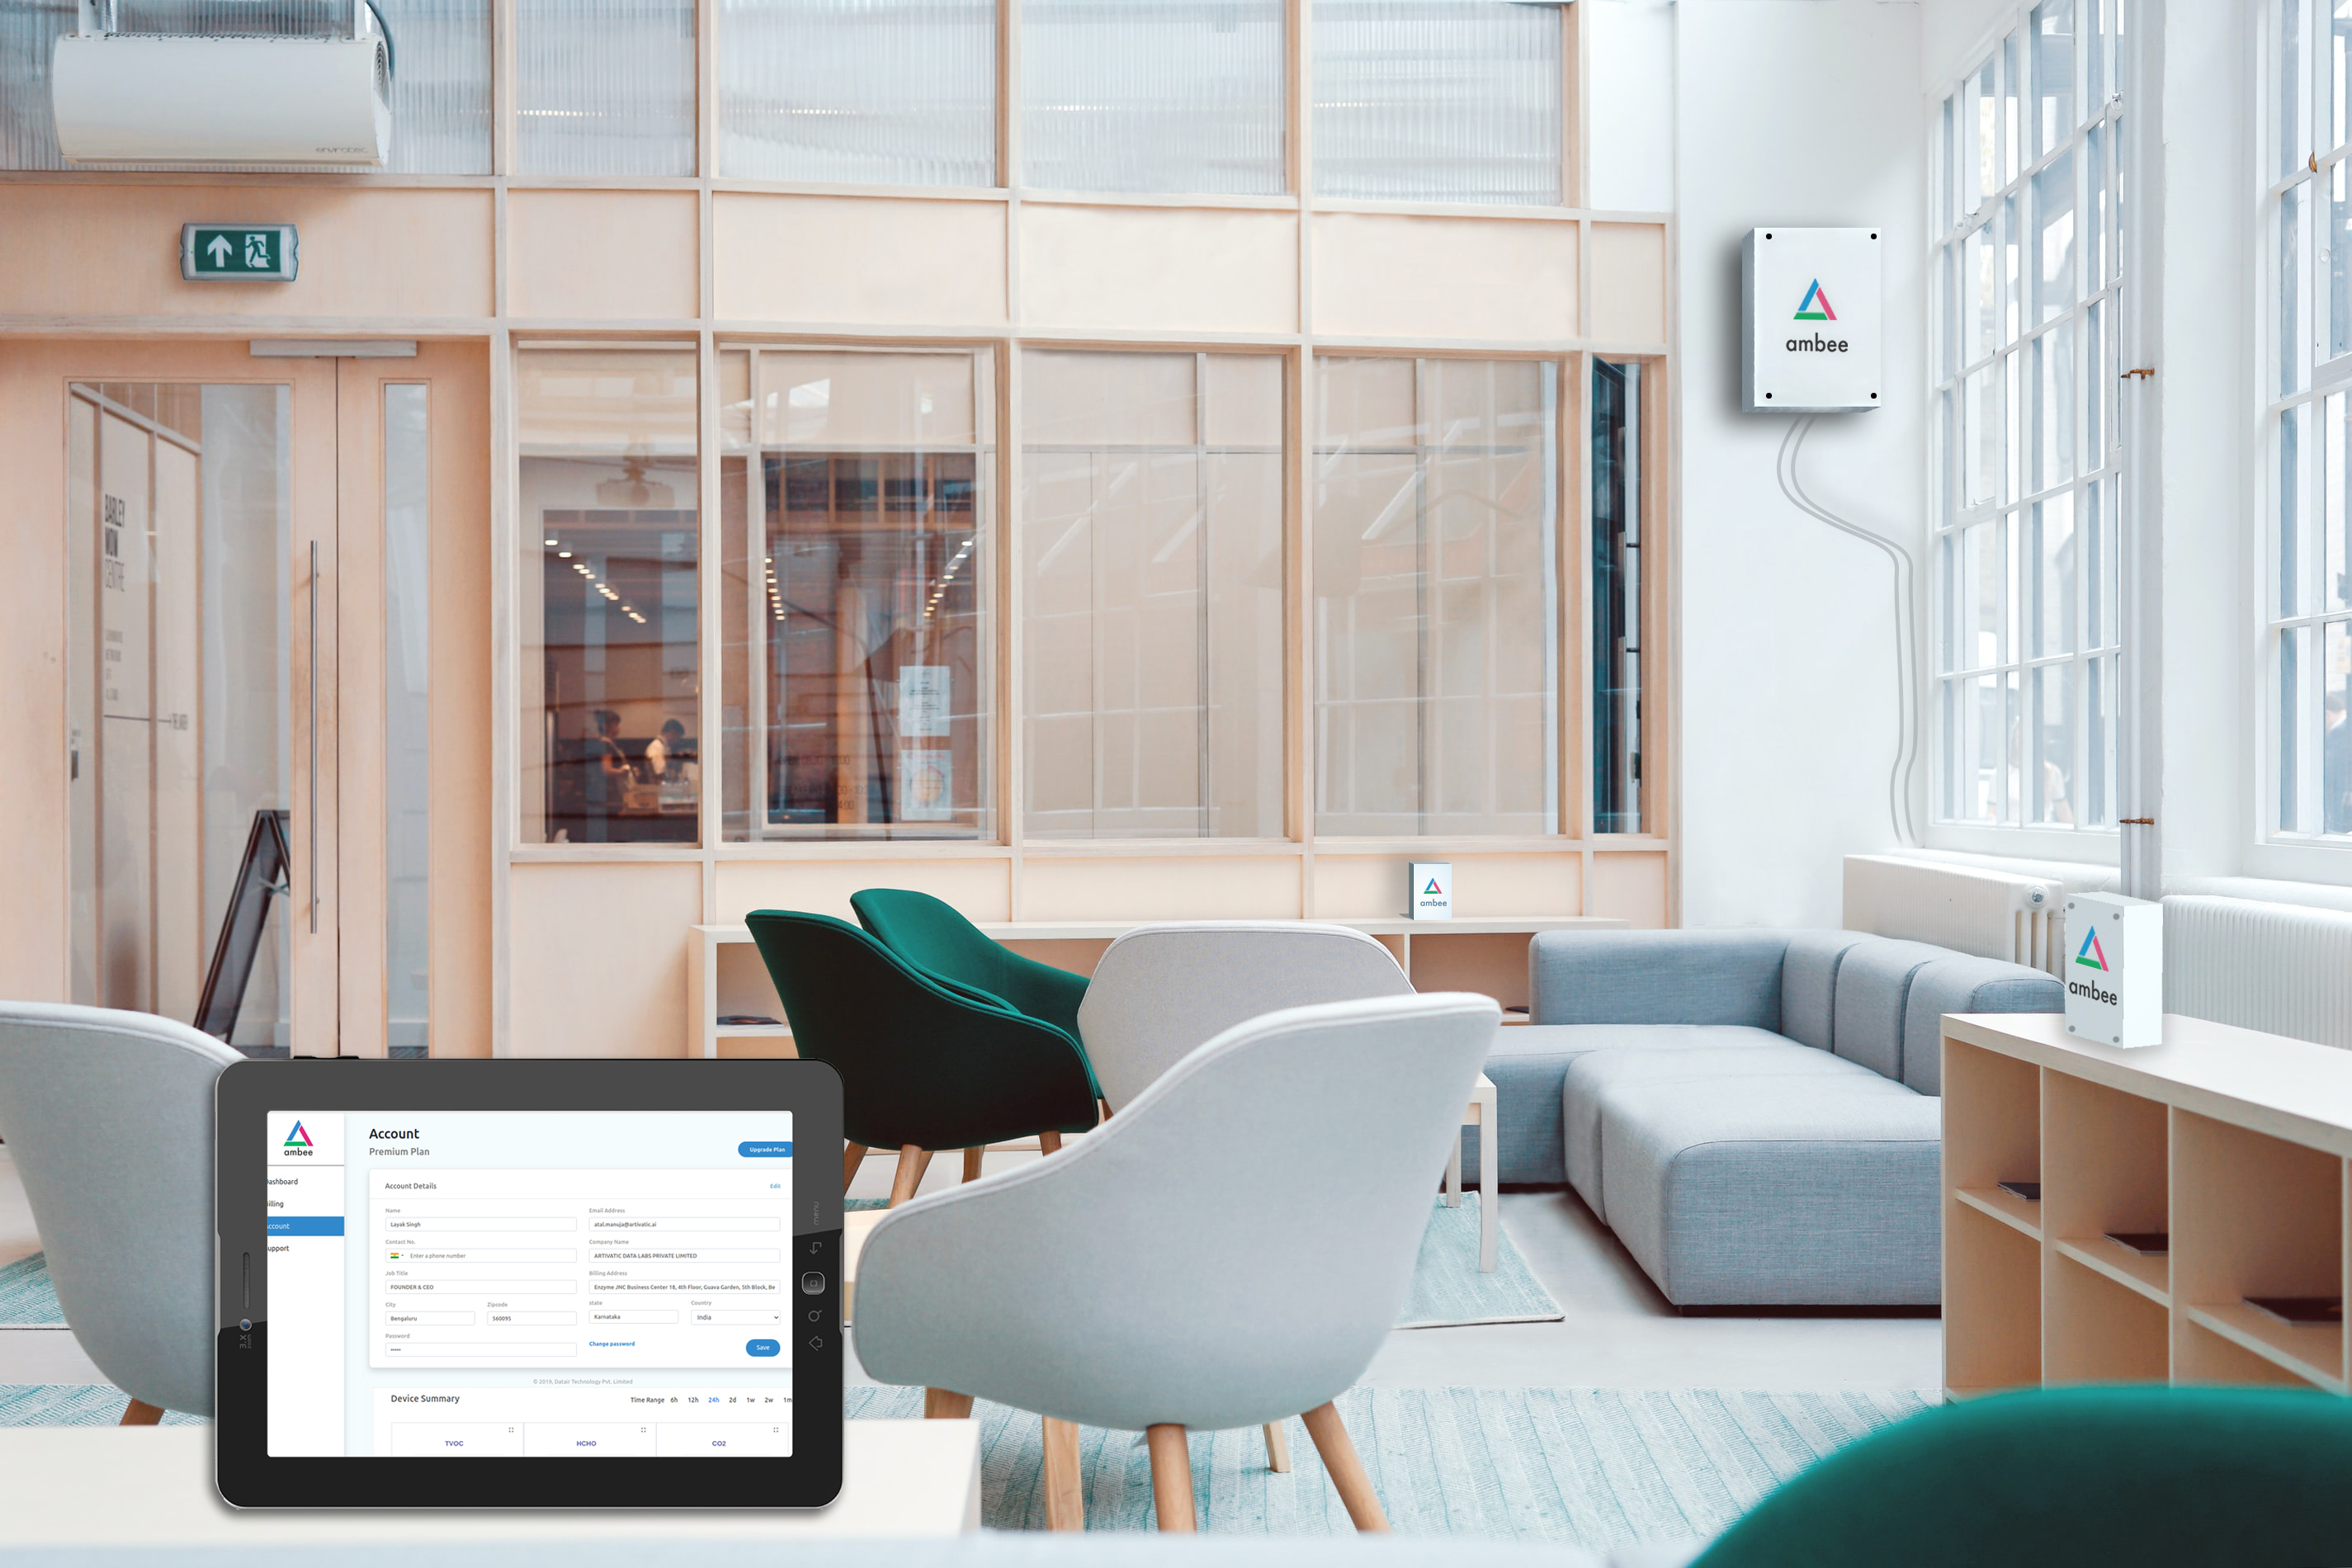 A clean looking room with air monitoring devices from Ambee places in three corners